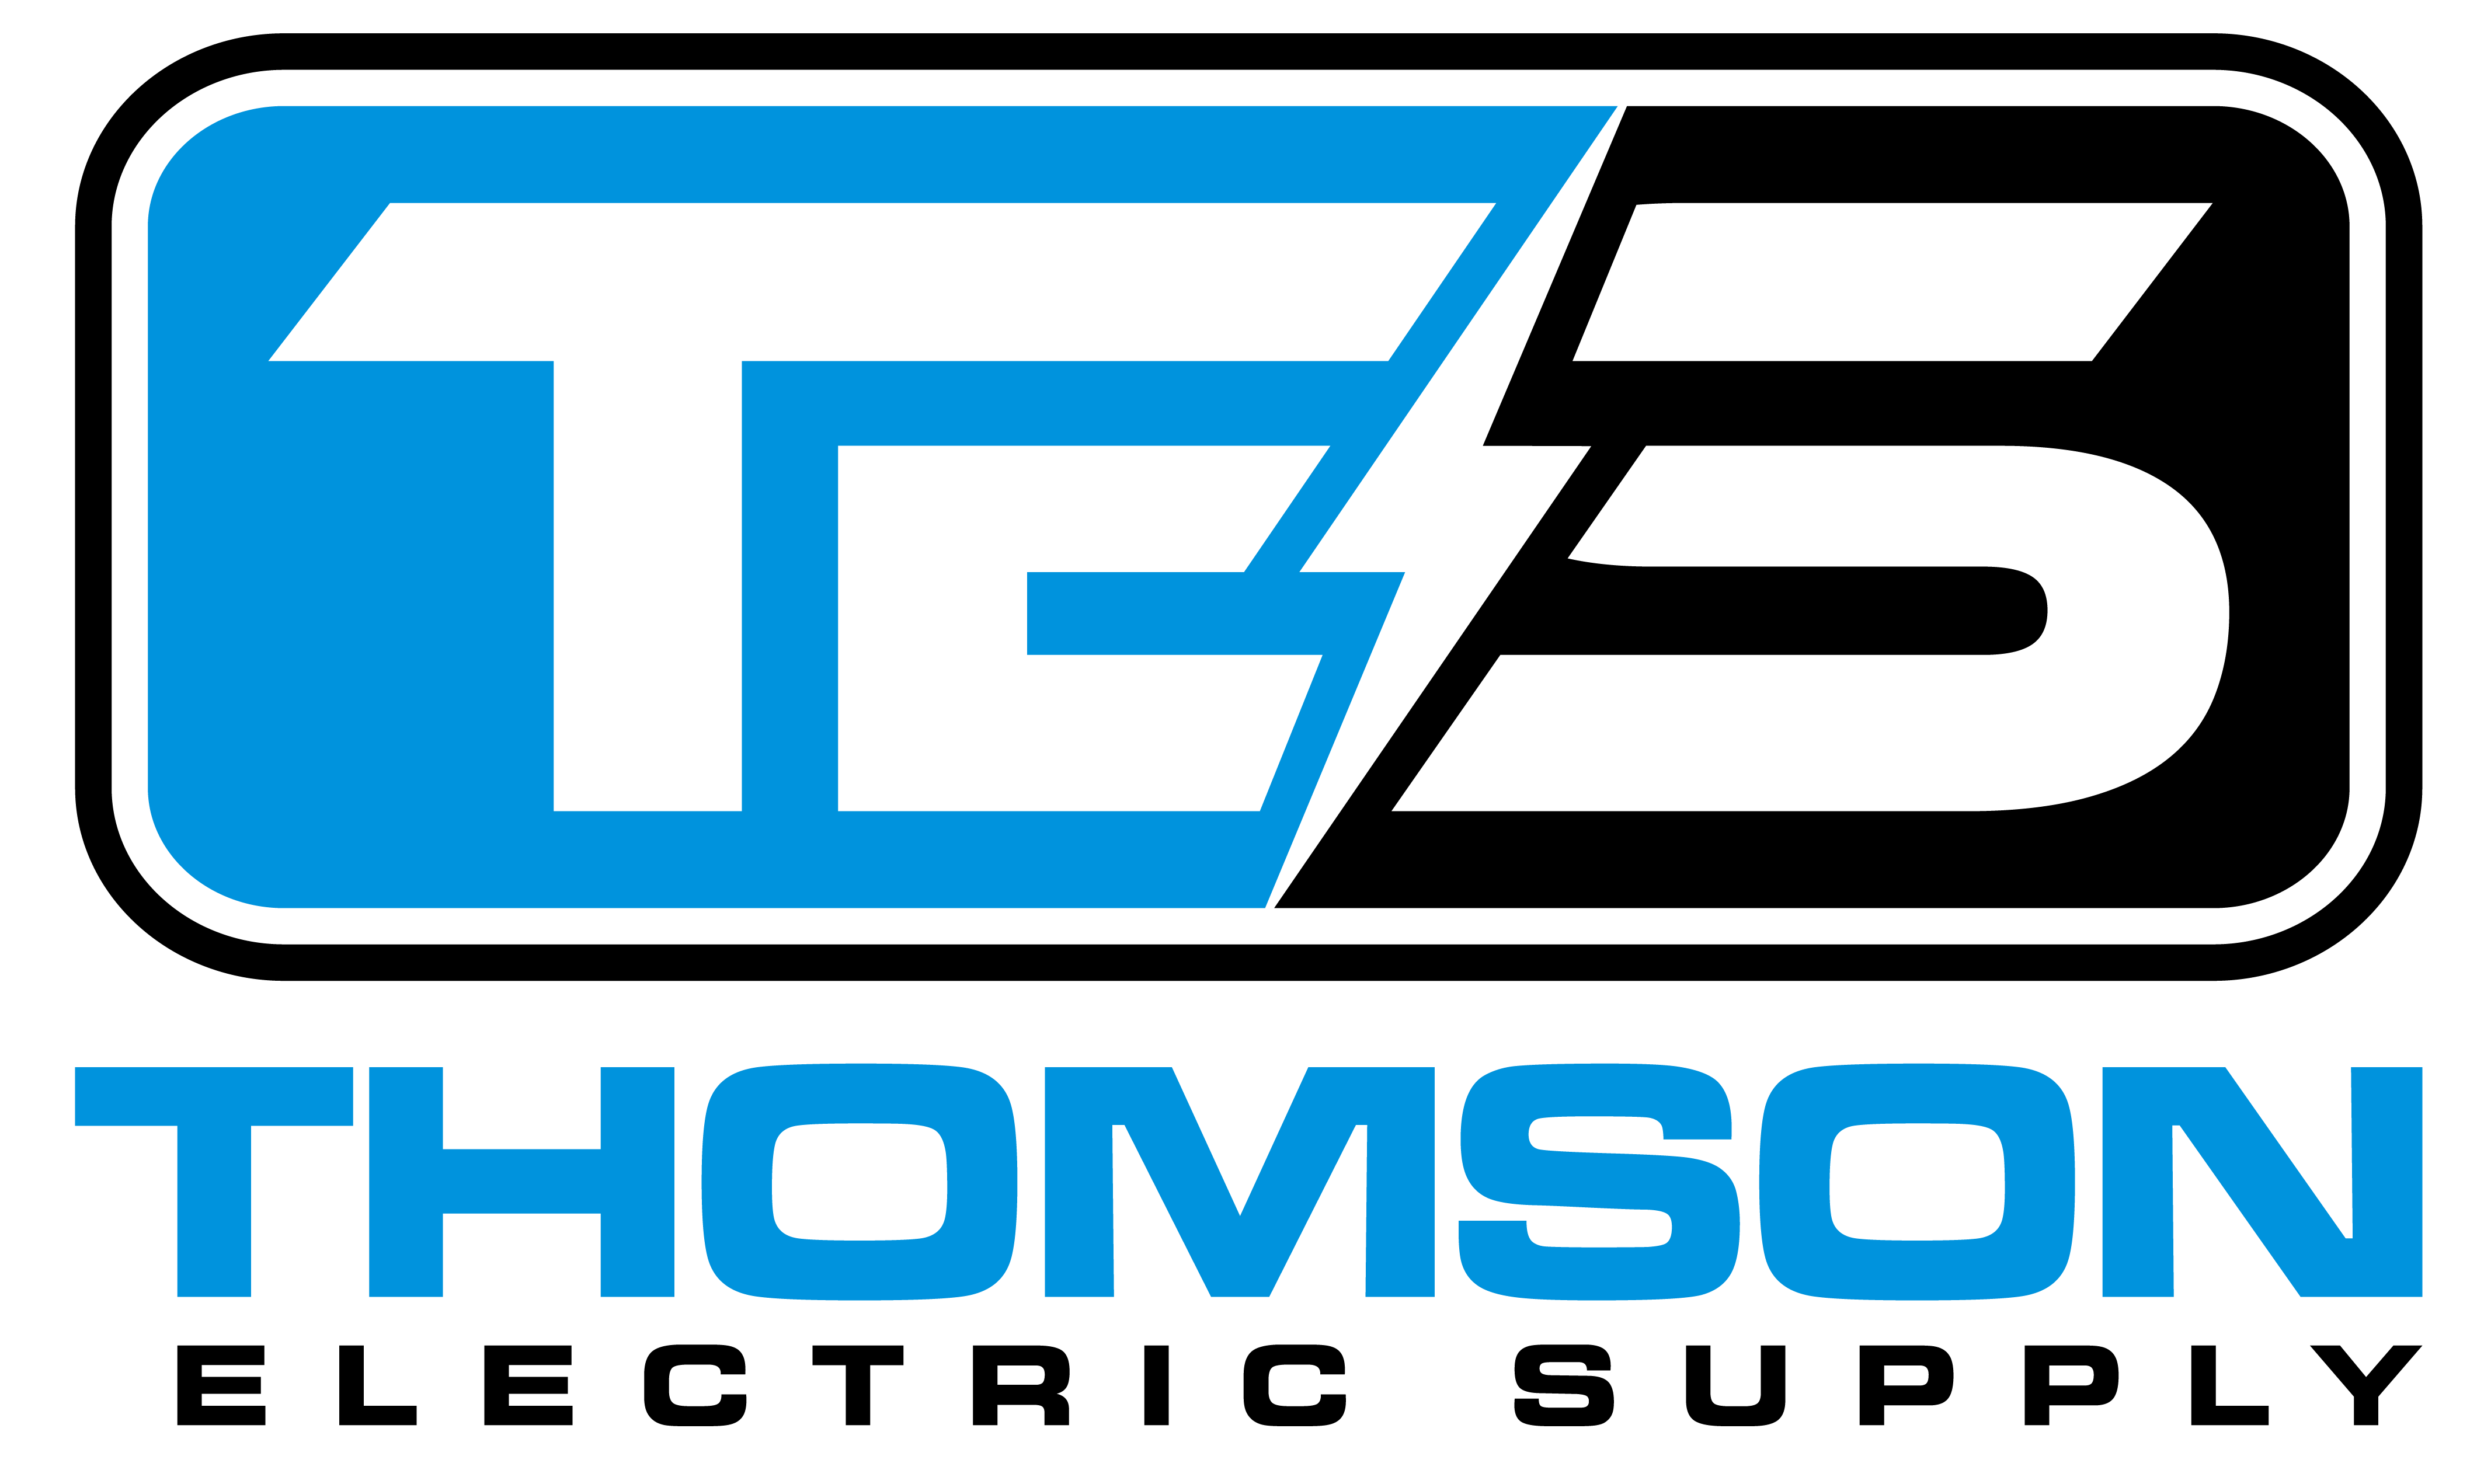 Thomson Electric Supply